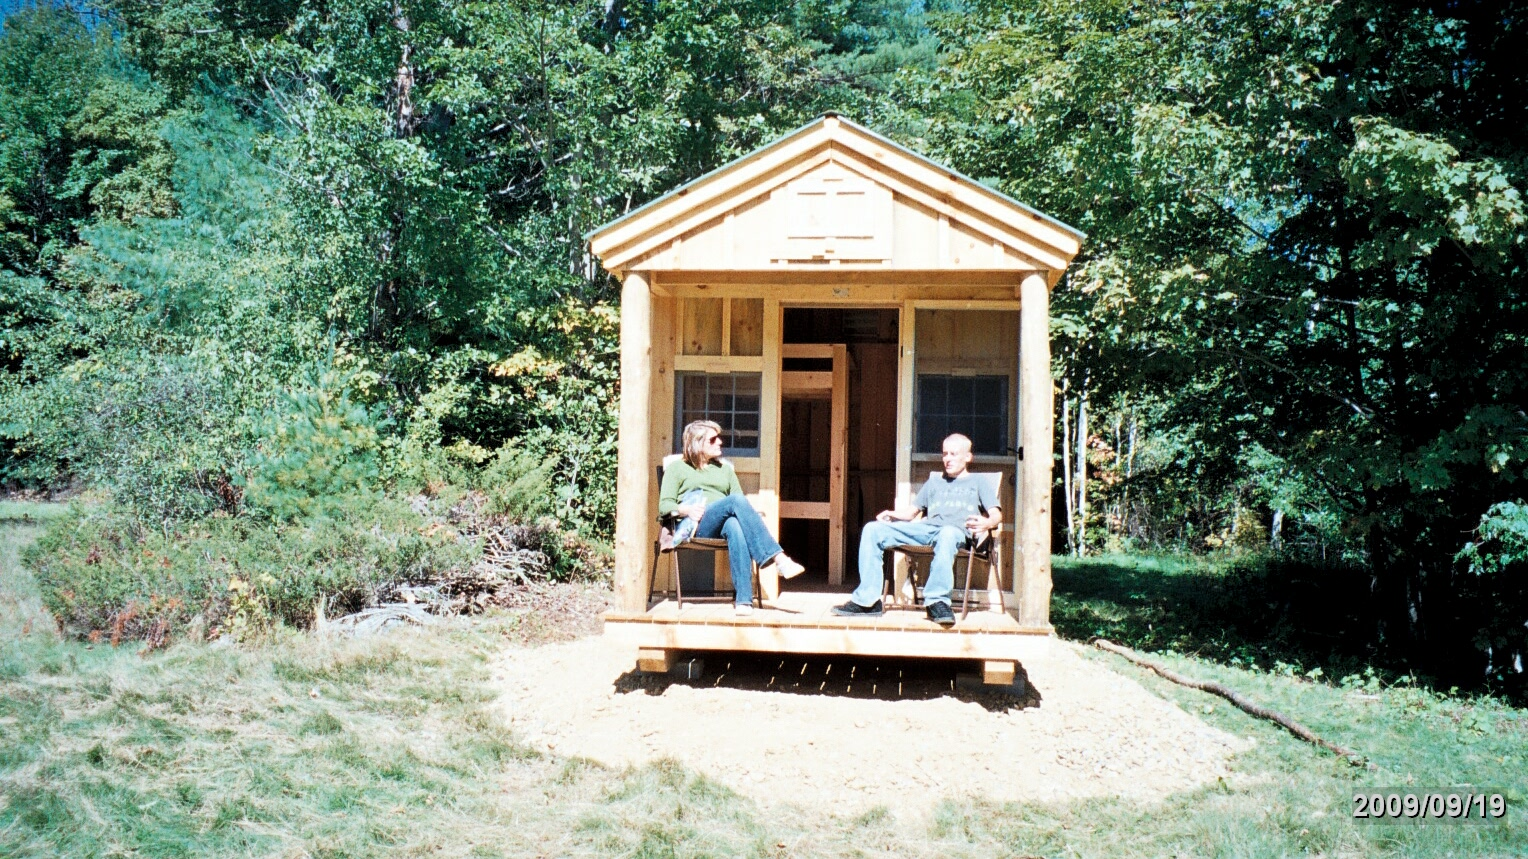 Building a small hunting camp hunting cabin plans and for Small camping cabin kits